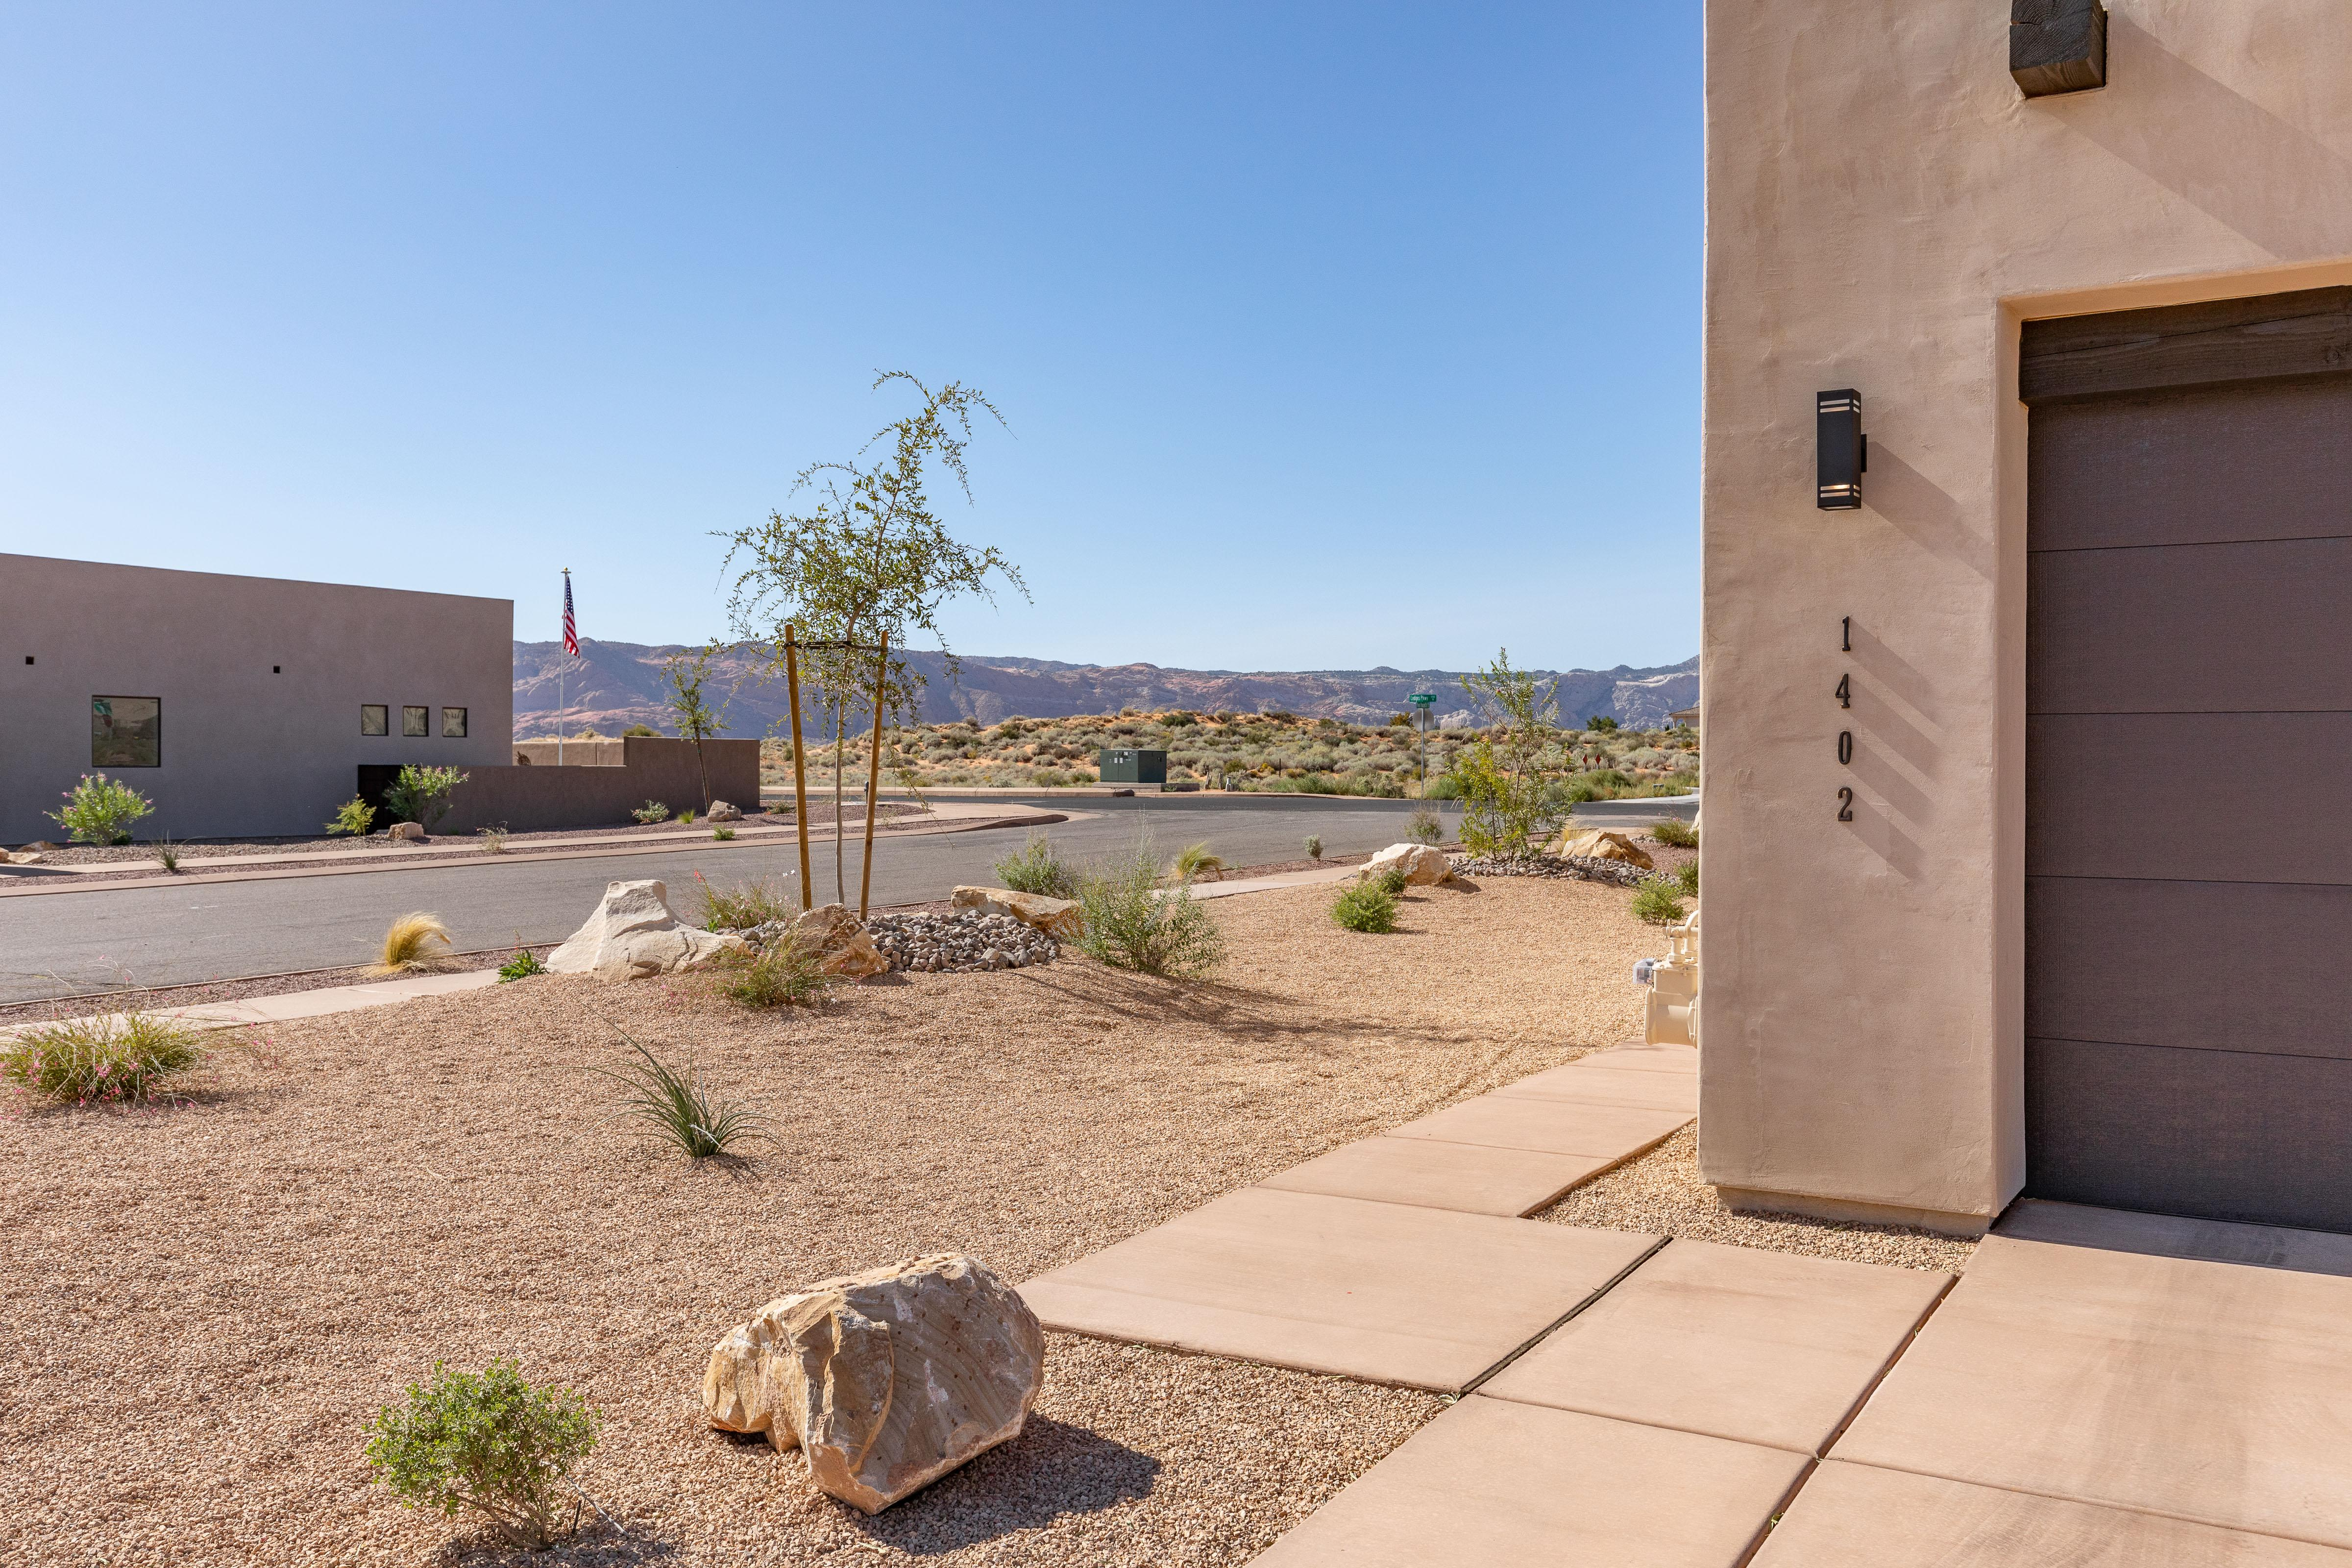 This home is located on the corner and has an amazing view of the red mountains